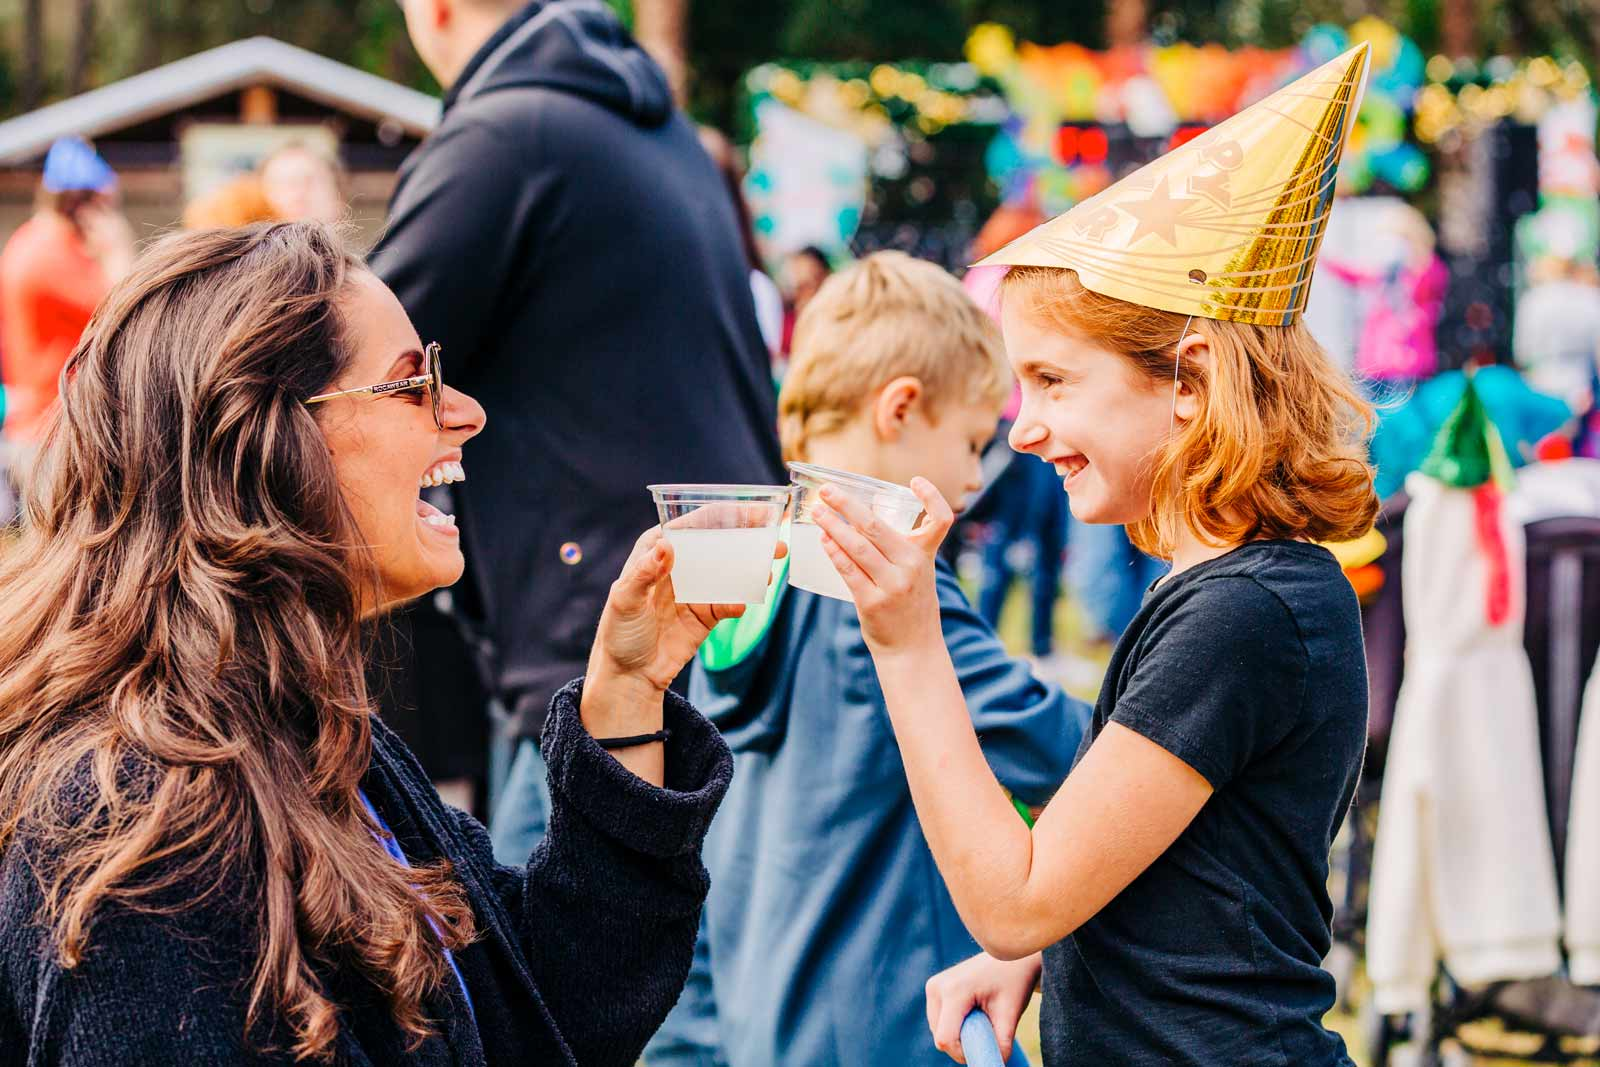 A young girl wearing a party hat toasts with her mom with a glass of lemonade at Noon Year's Eve at ZooTampa on December 31st while bubbles lift past them into the air